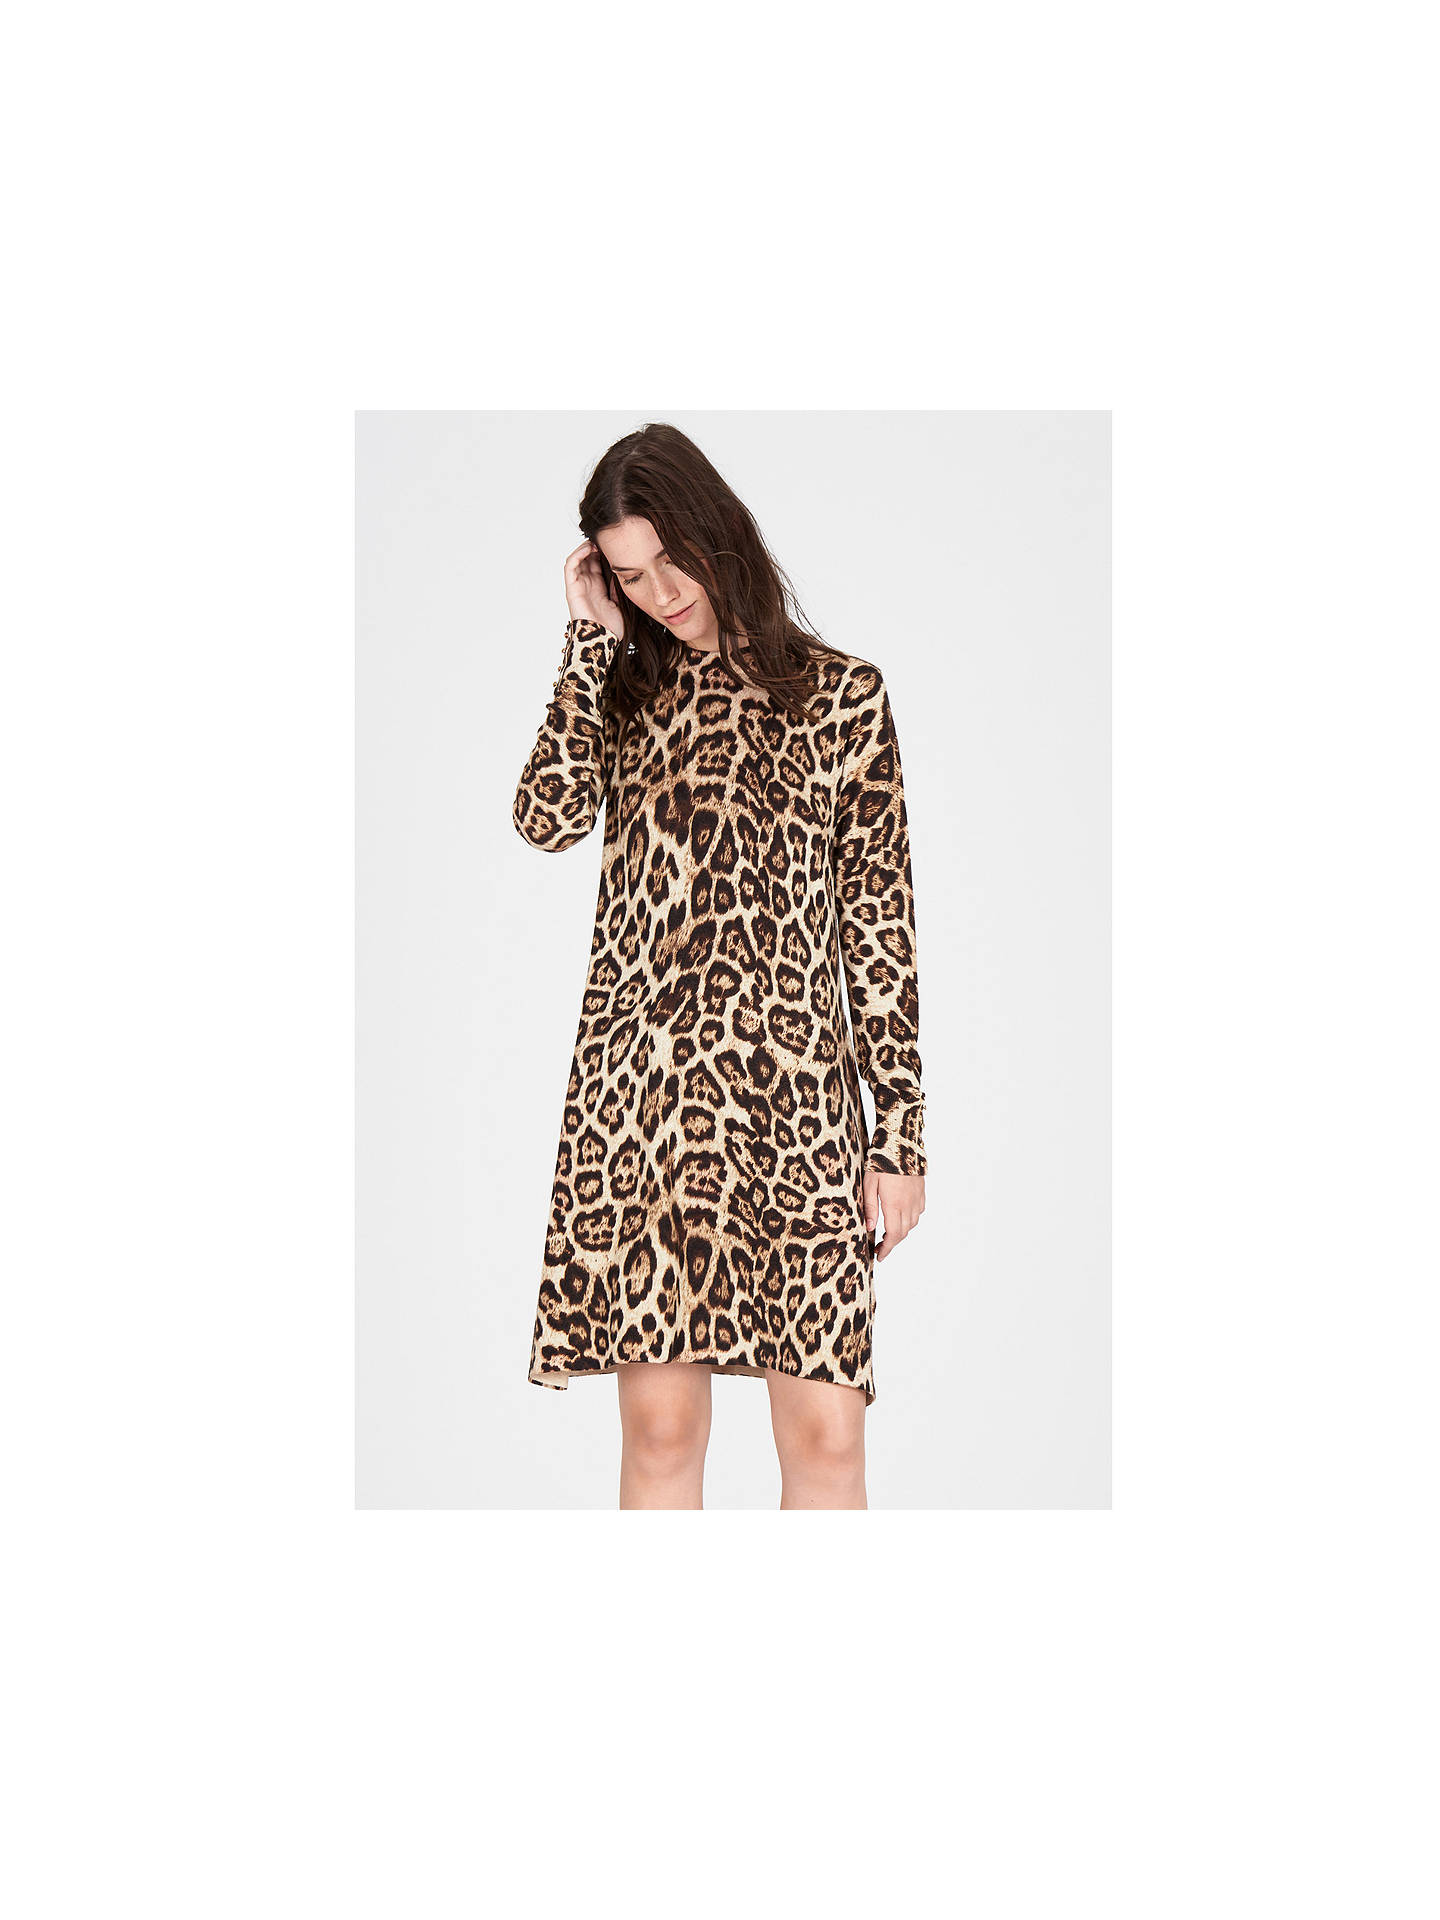 ... BuyWarehouse Animal Print Swing Dress 0a7a67094